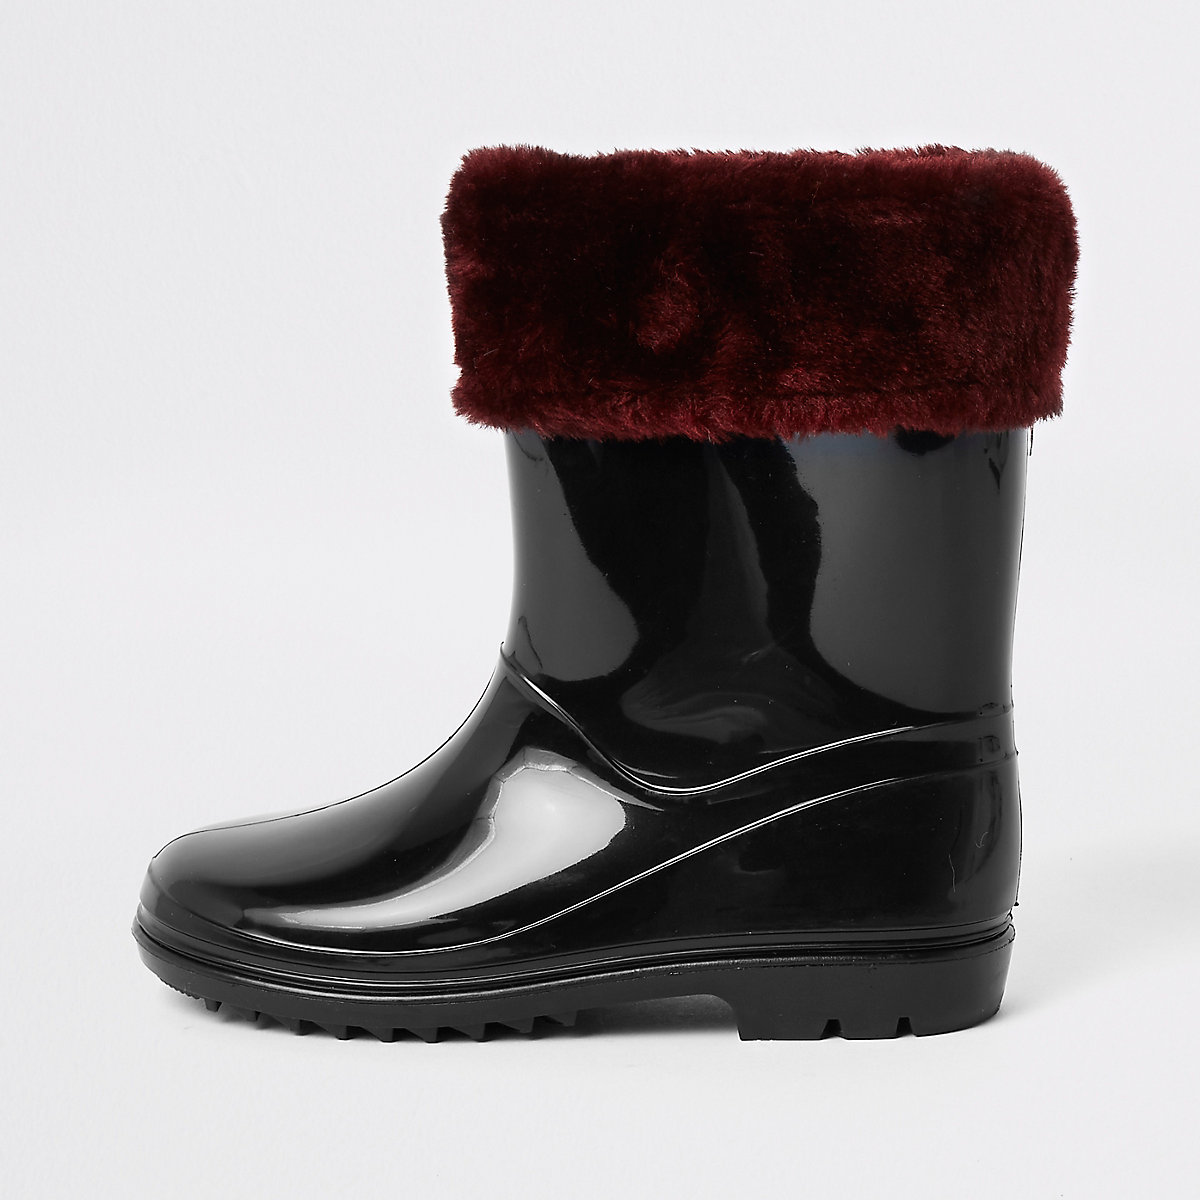 Girls black faux fur foldover rubber boots